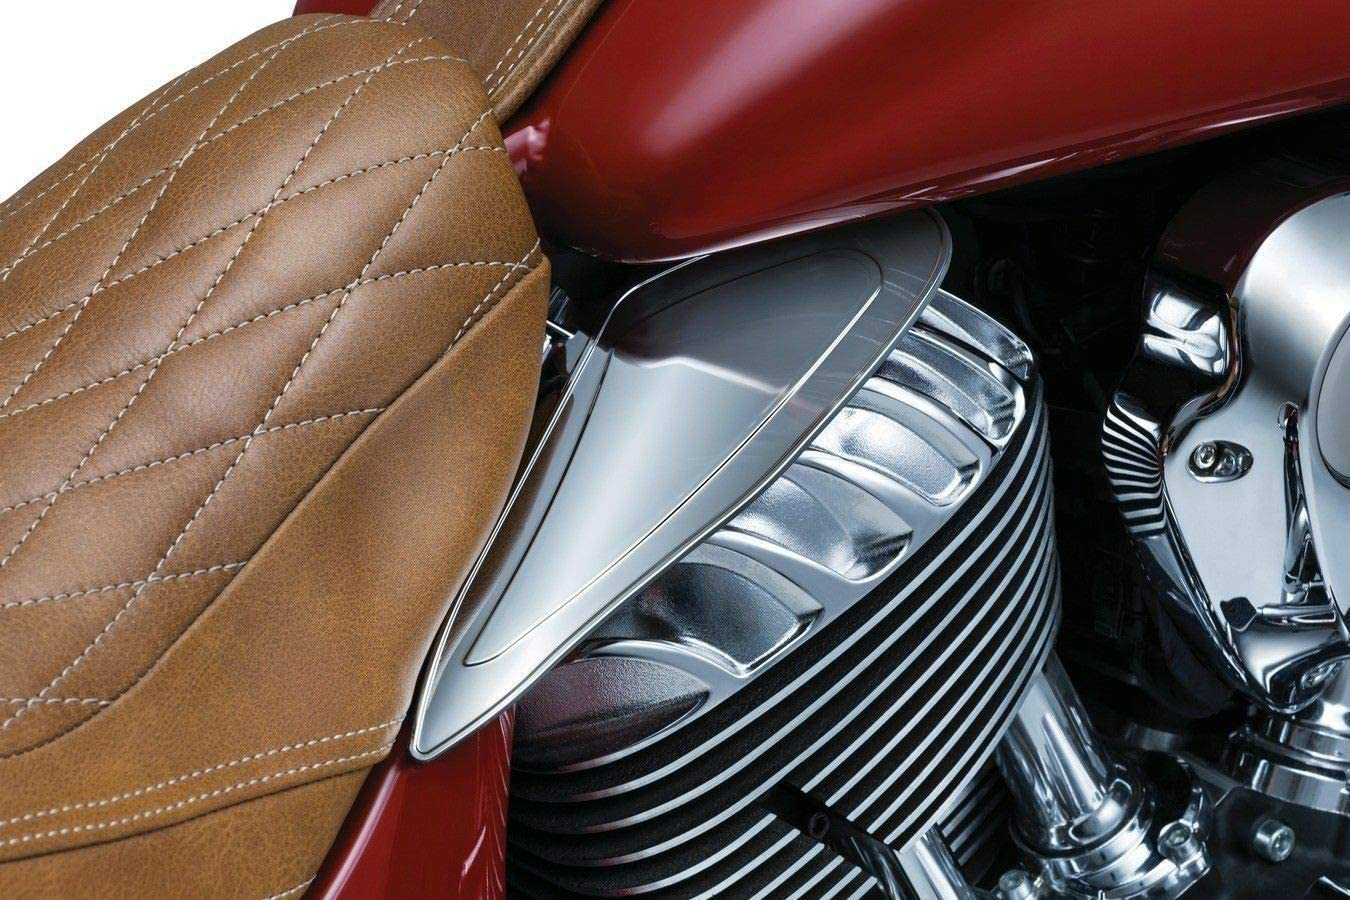 Online limited product RPM Compatible with Kuryakyn 7181 Heat mart Saddle Deflectors Shields